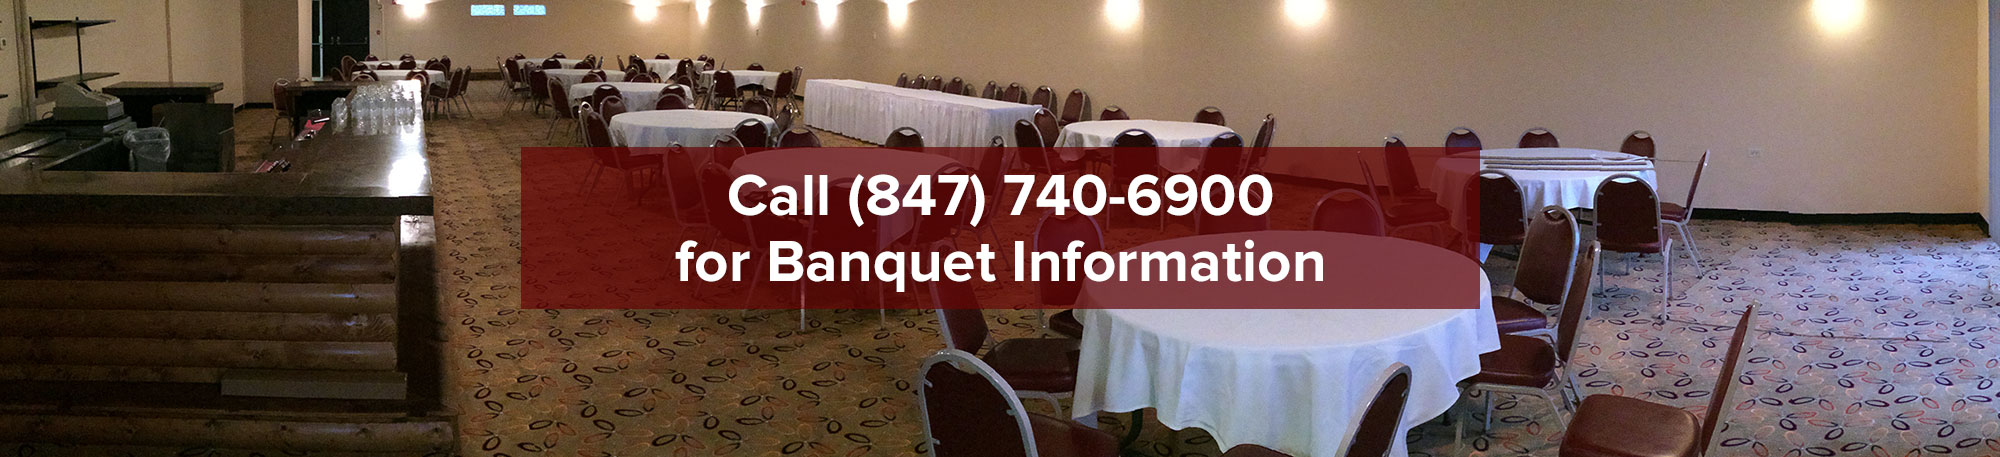 home-banquet-image